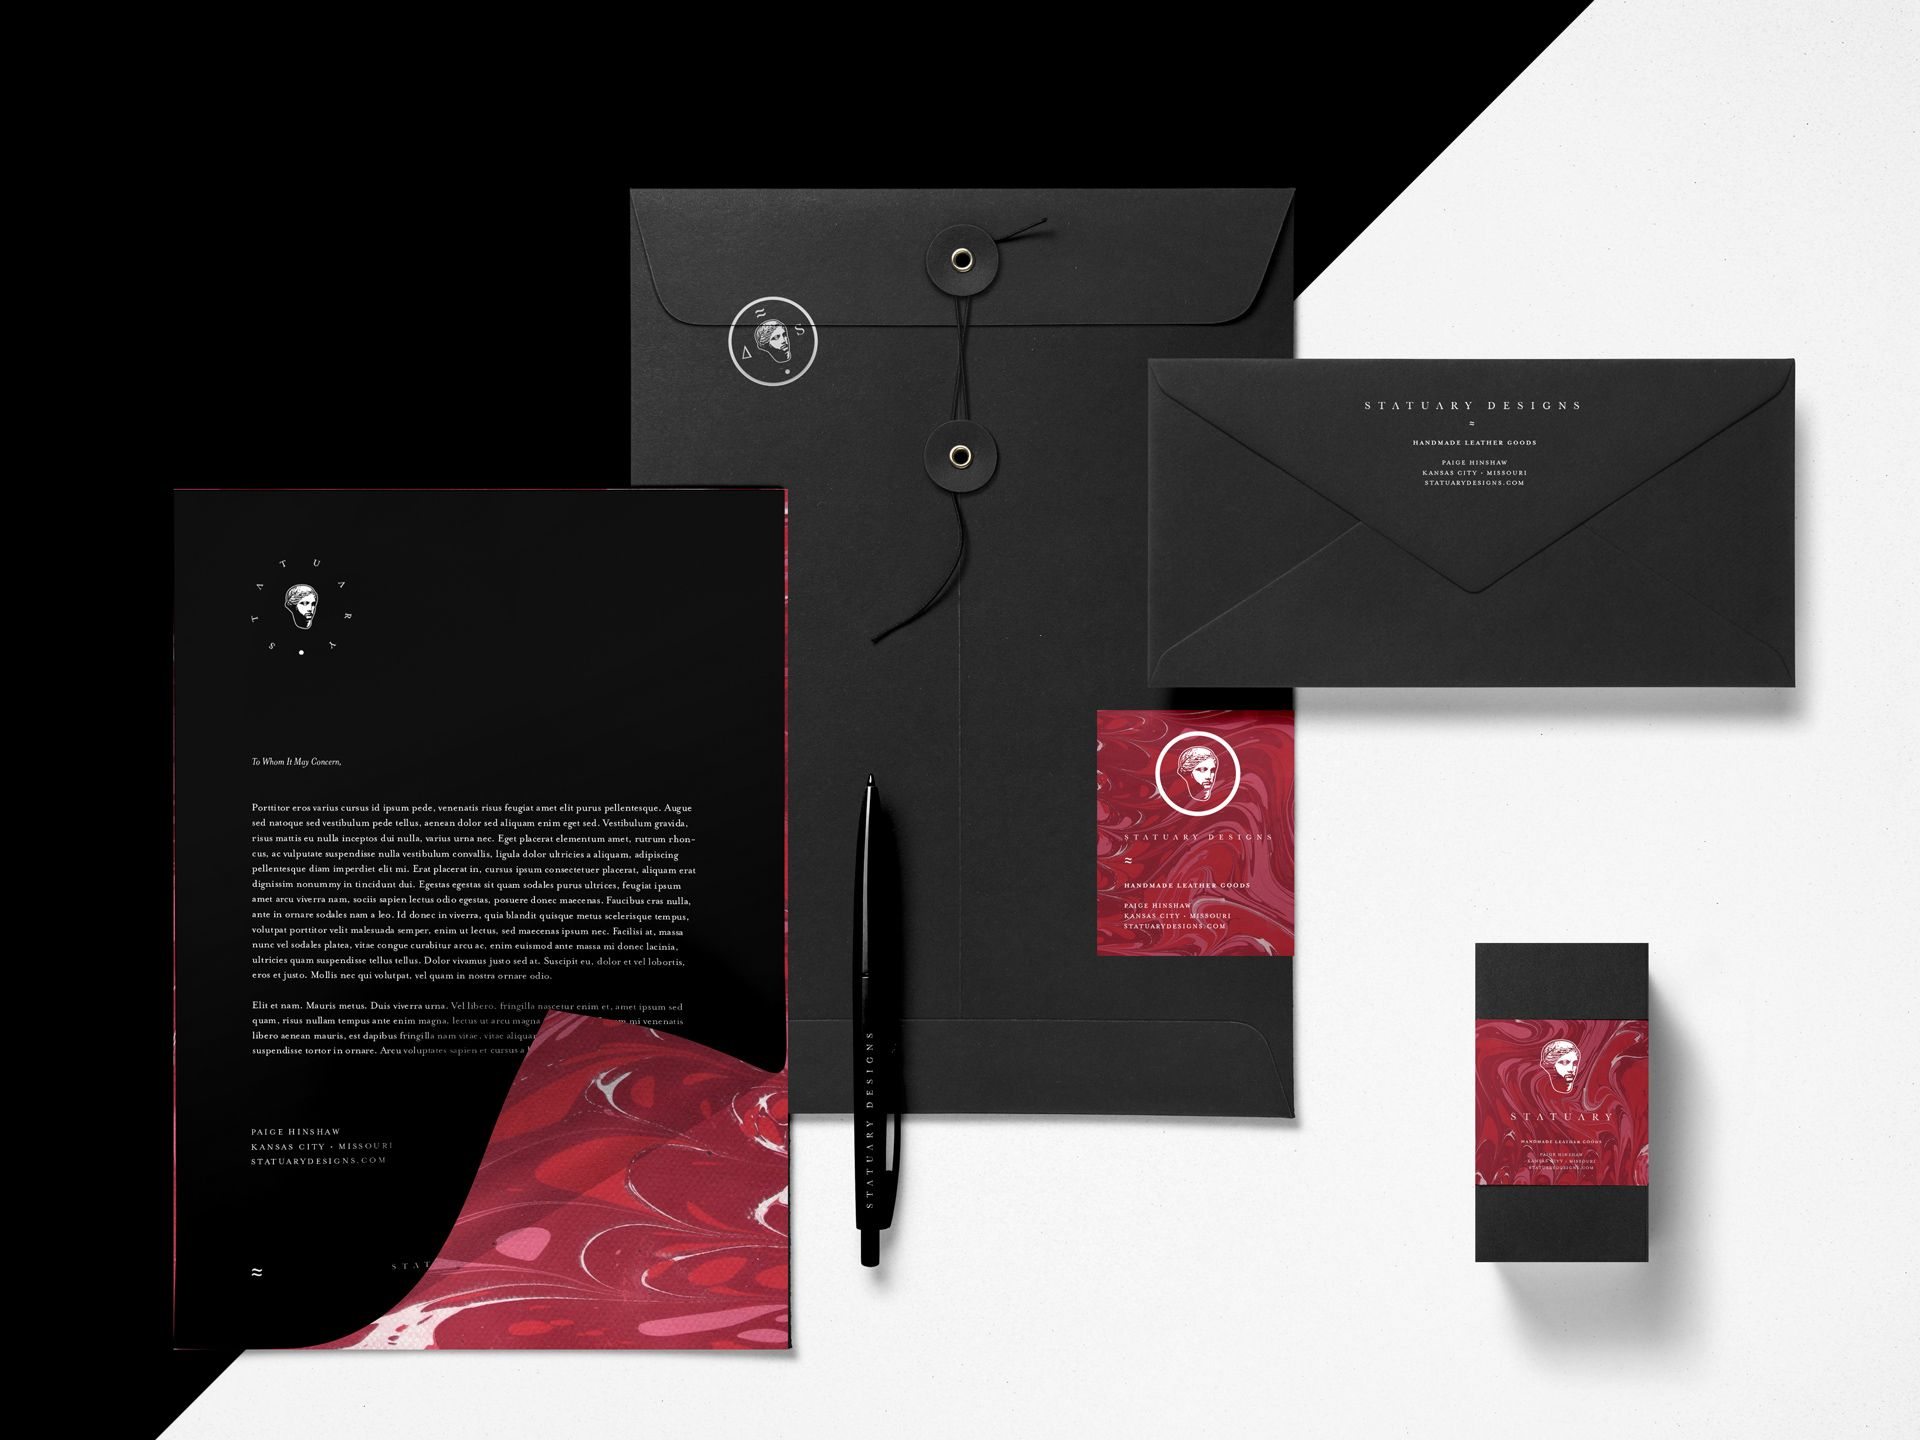 SamSmall Web-StatuaryDesigns-Collateral Design